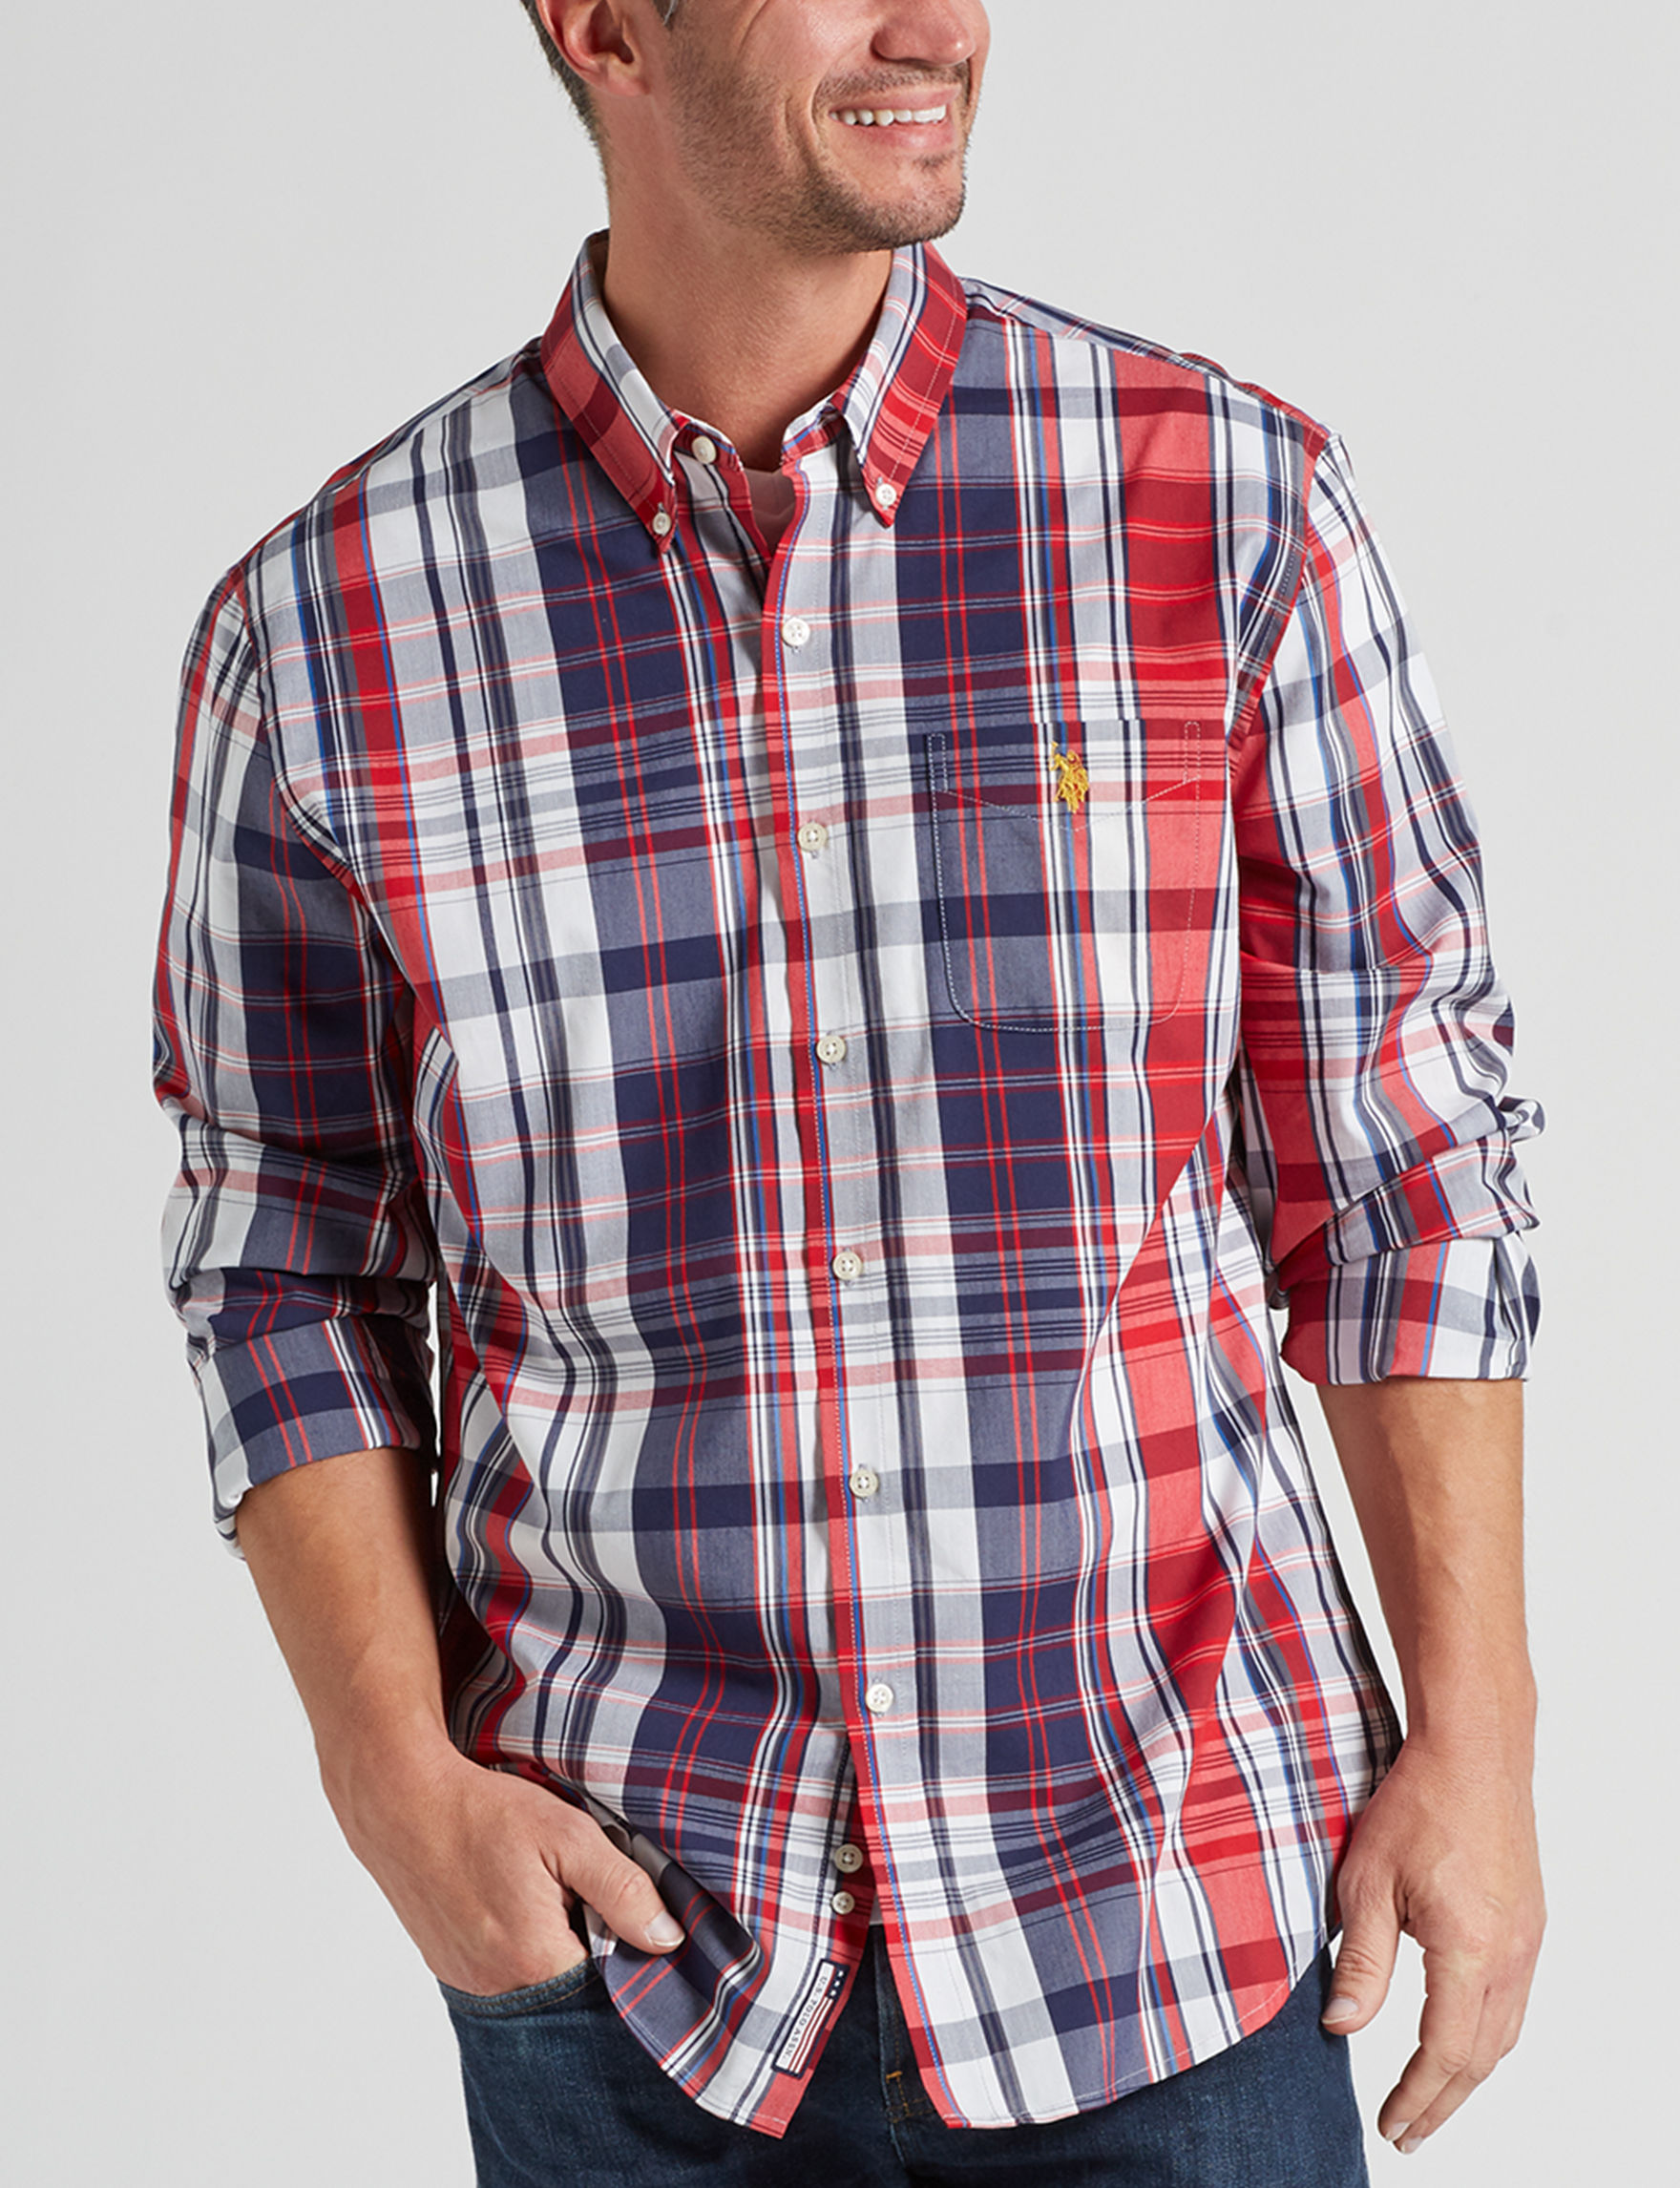 U.S. Polo Assn. Navy / Red Casual Button Down Shirts